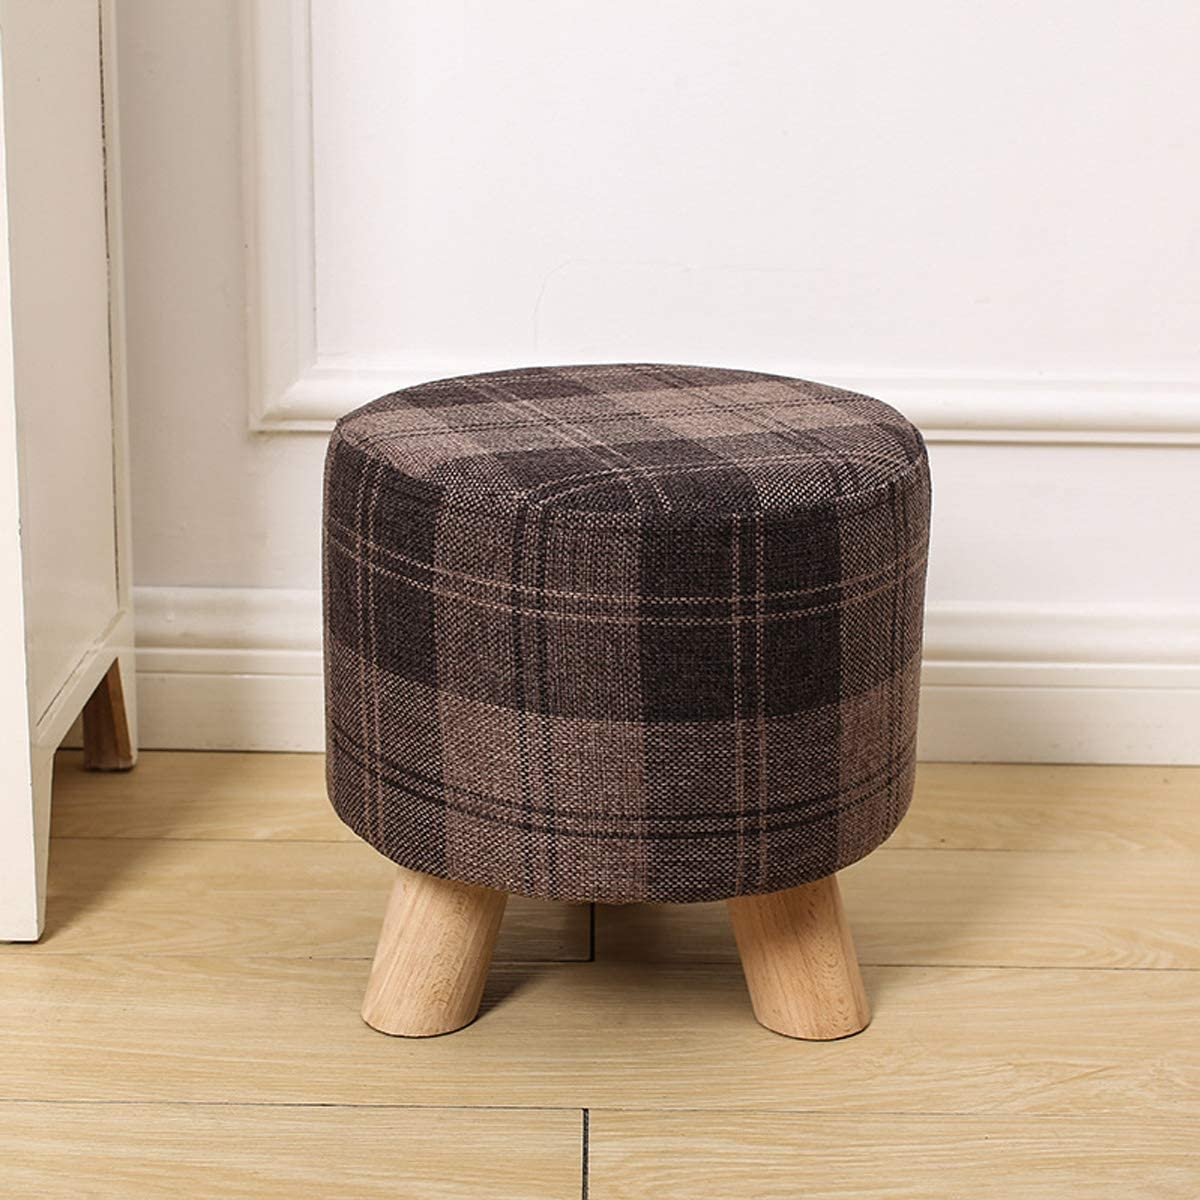 ZHOU free shipping YANG Fashion Coffee Table Stoo Now on sale Stool, Change Shoes Fabric